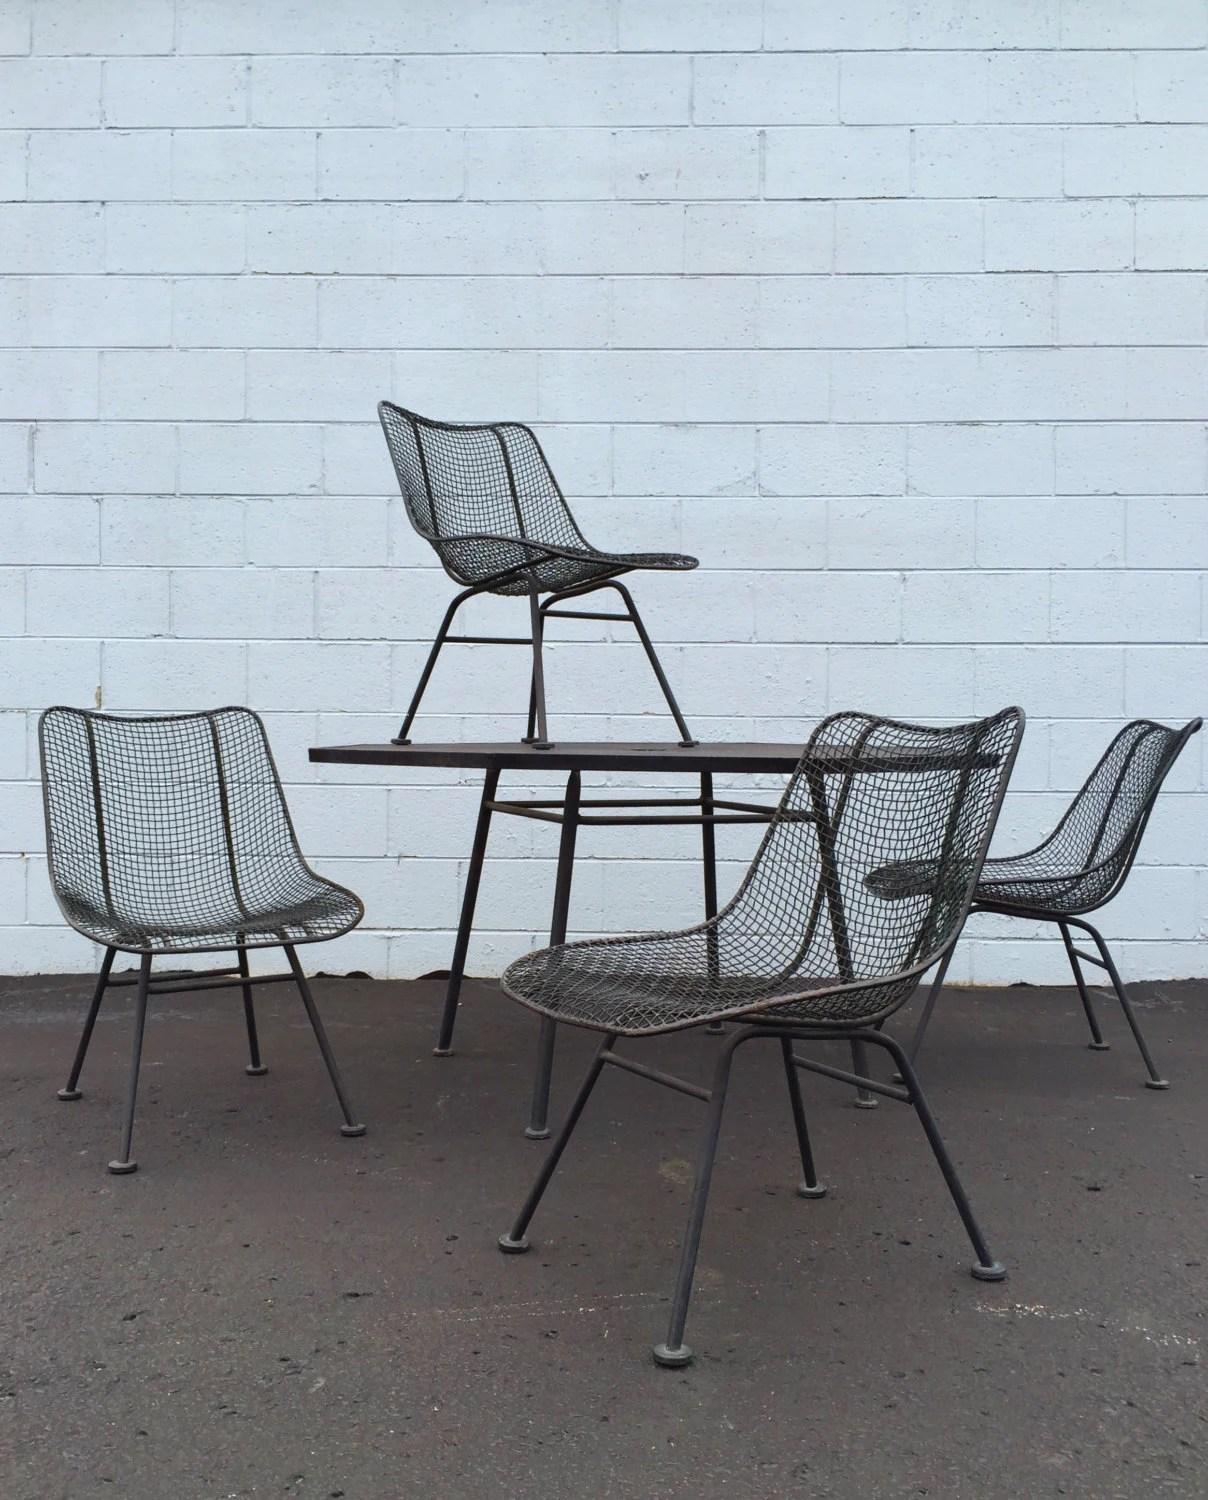 5 Piece Vintage Russell Woodard Sculptura Octoganal Table Wire Mesh Chairs Patio Set Black Mid